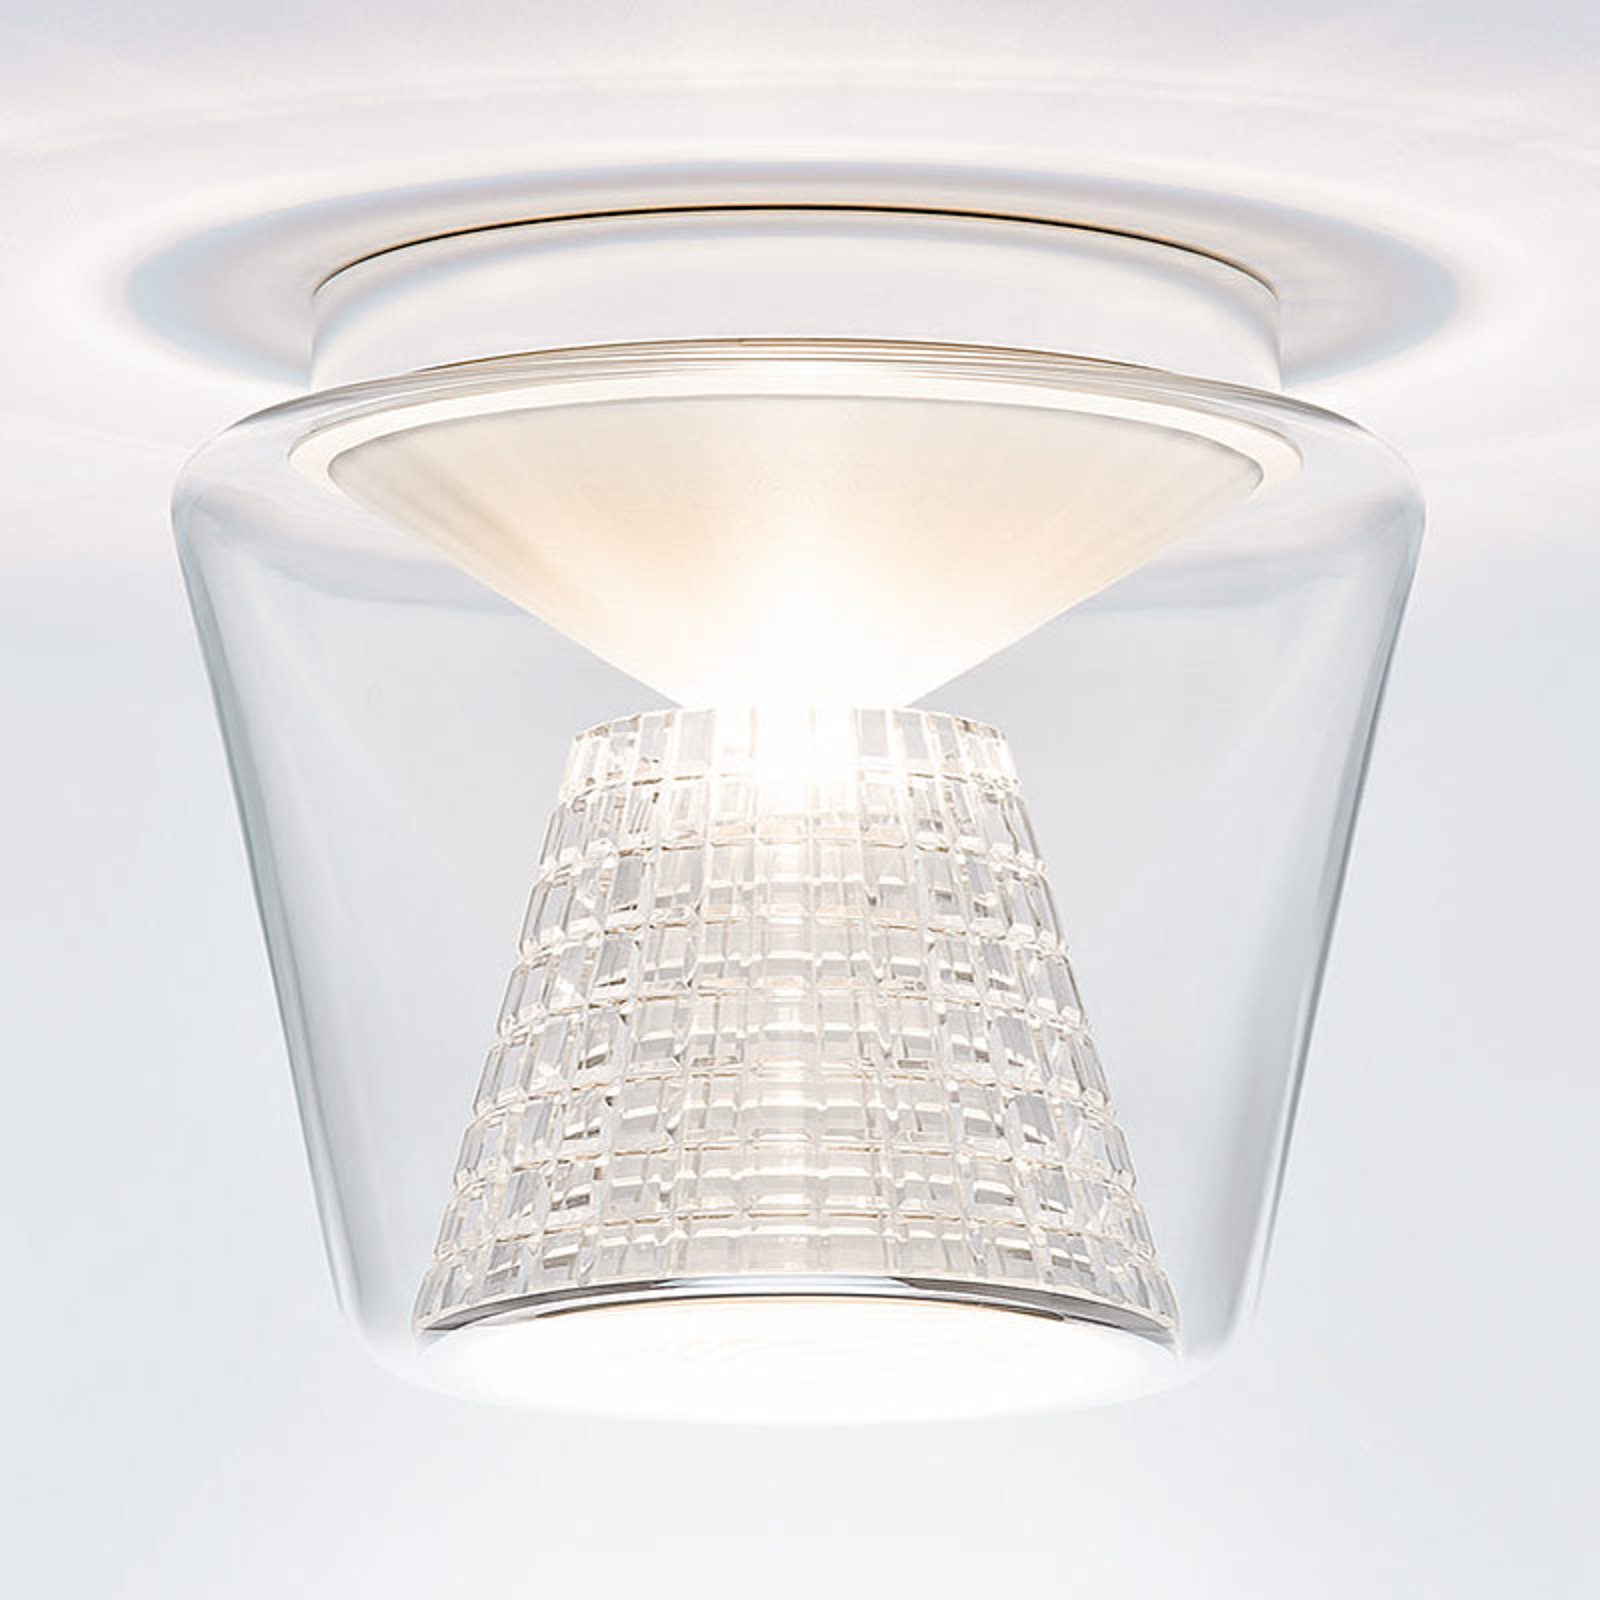 serien.lighting Annex M - LED plafondlamp